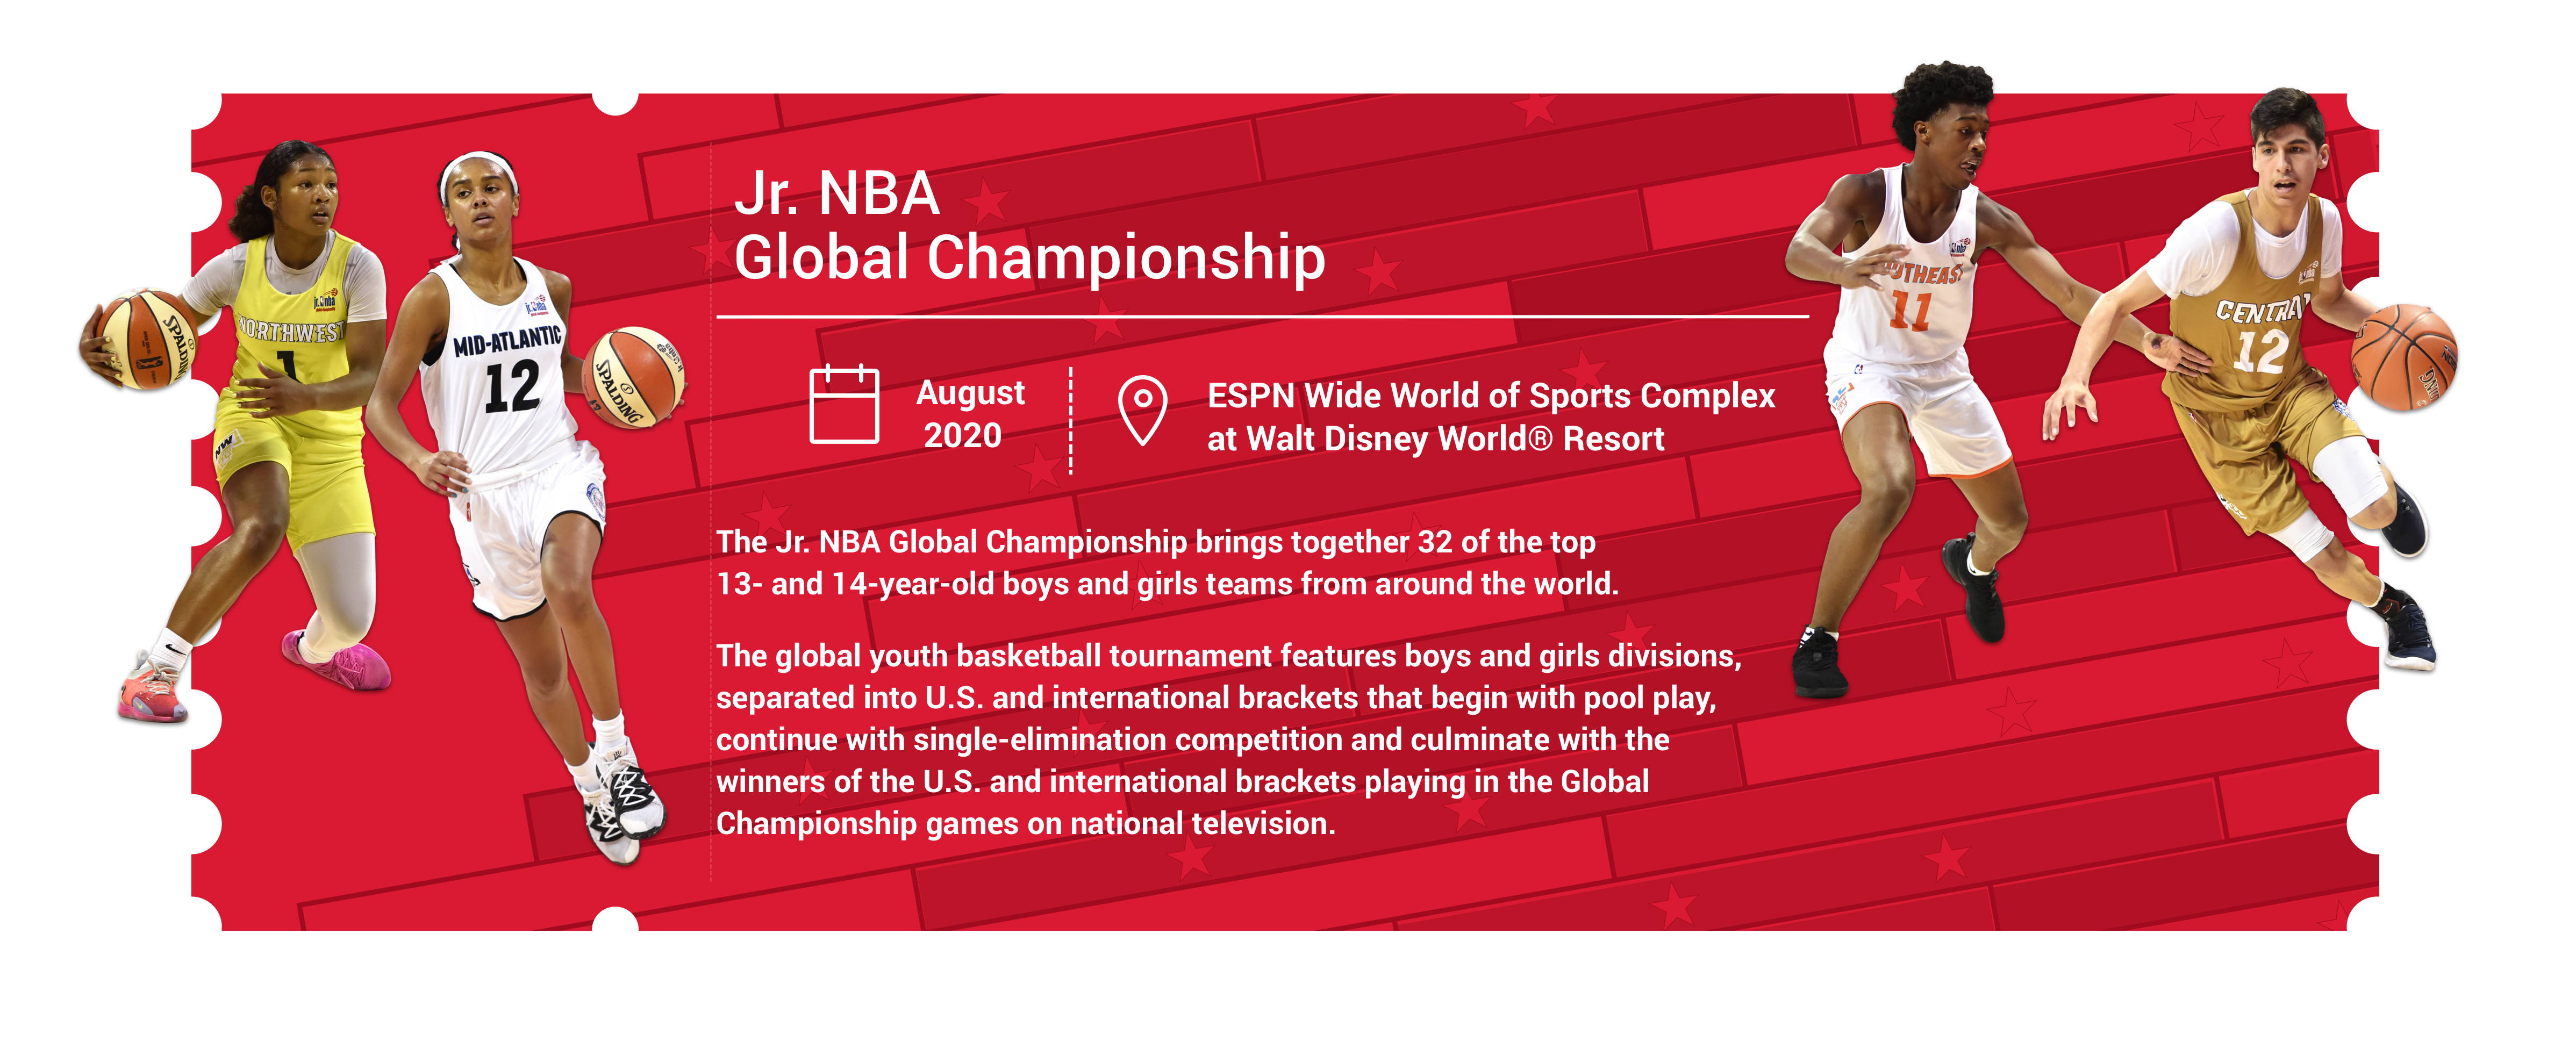 The Jr. NBA Global Championship